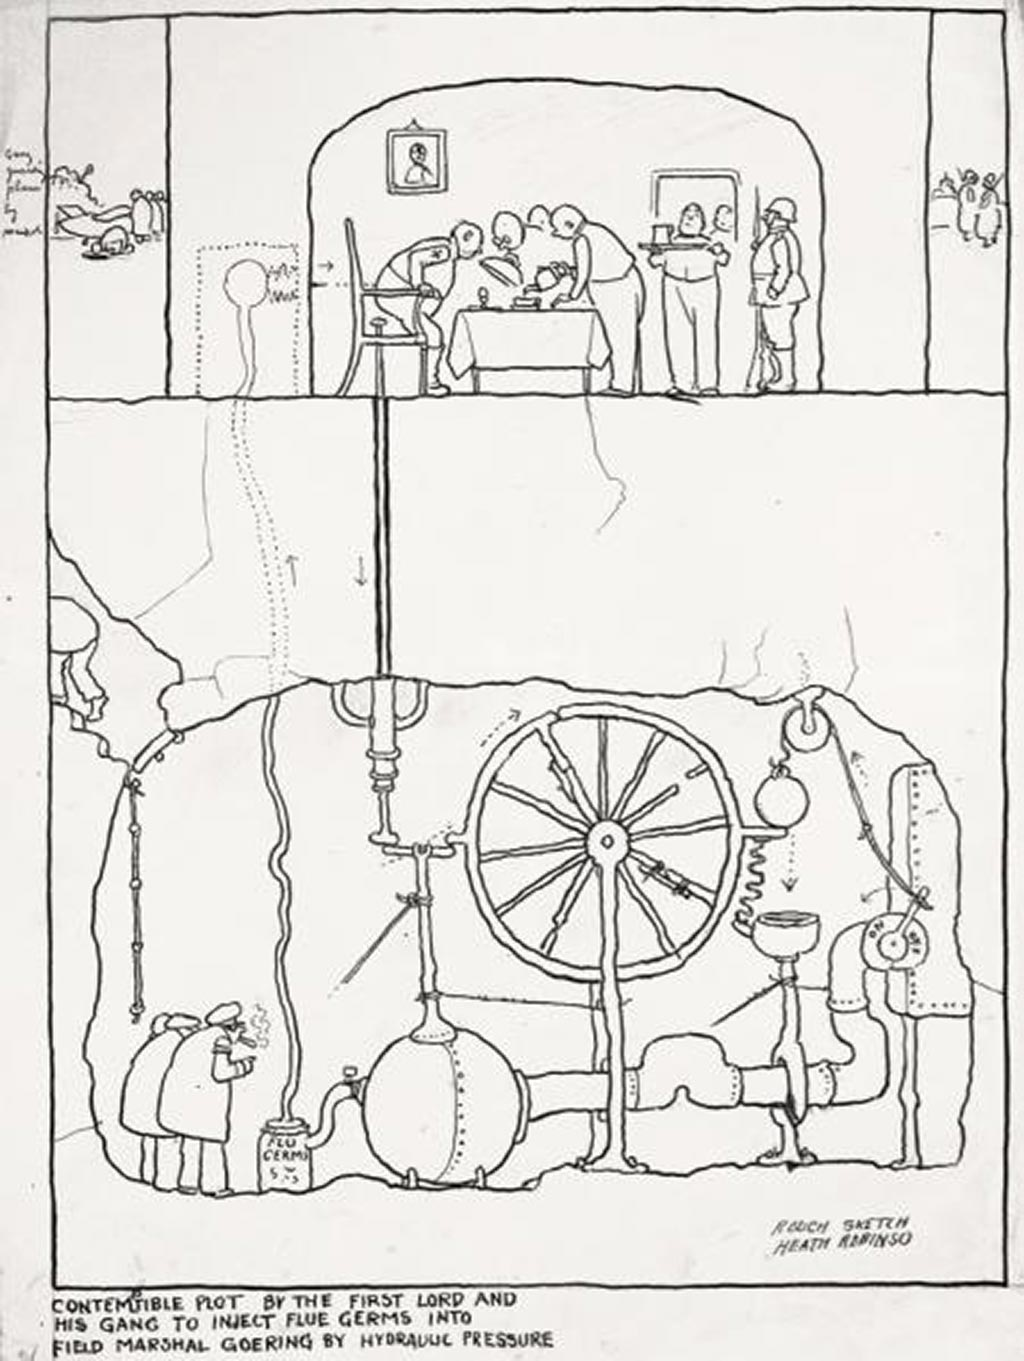 william_heath_robinson_inventions_contemptible_plot_1940